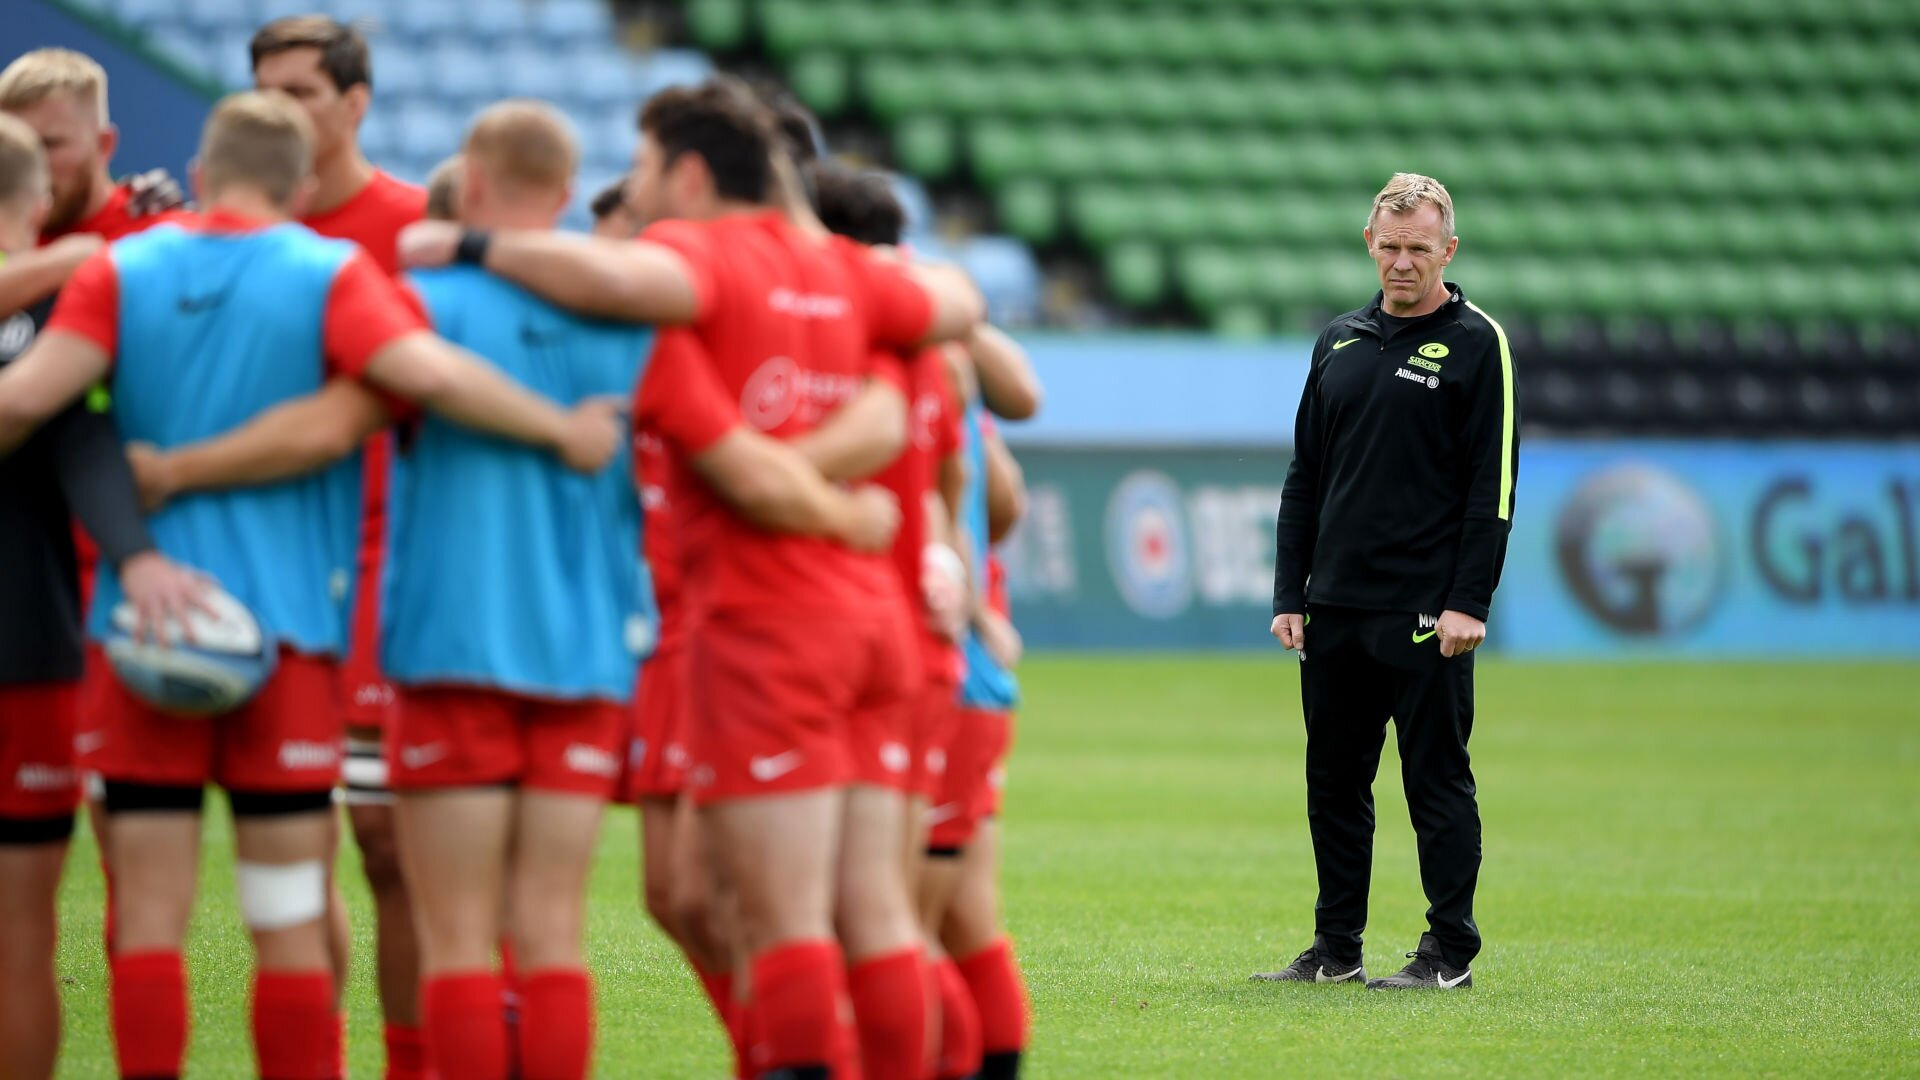 'Not much to lose, everything to gain': McCall on Saracens' mission improbable